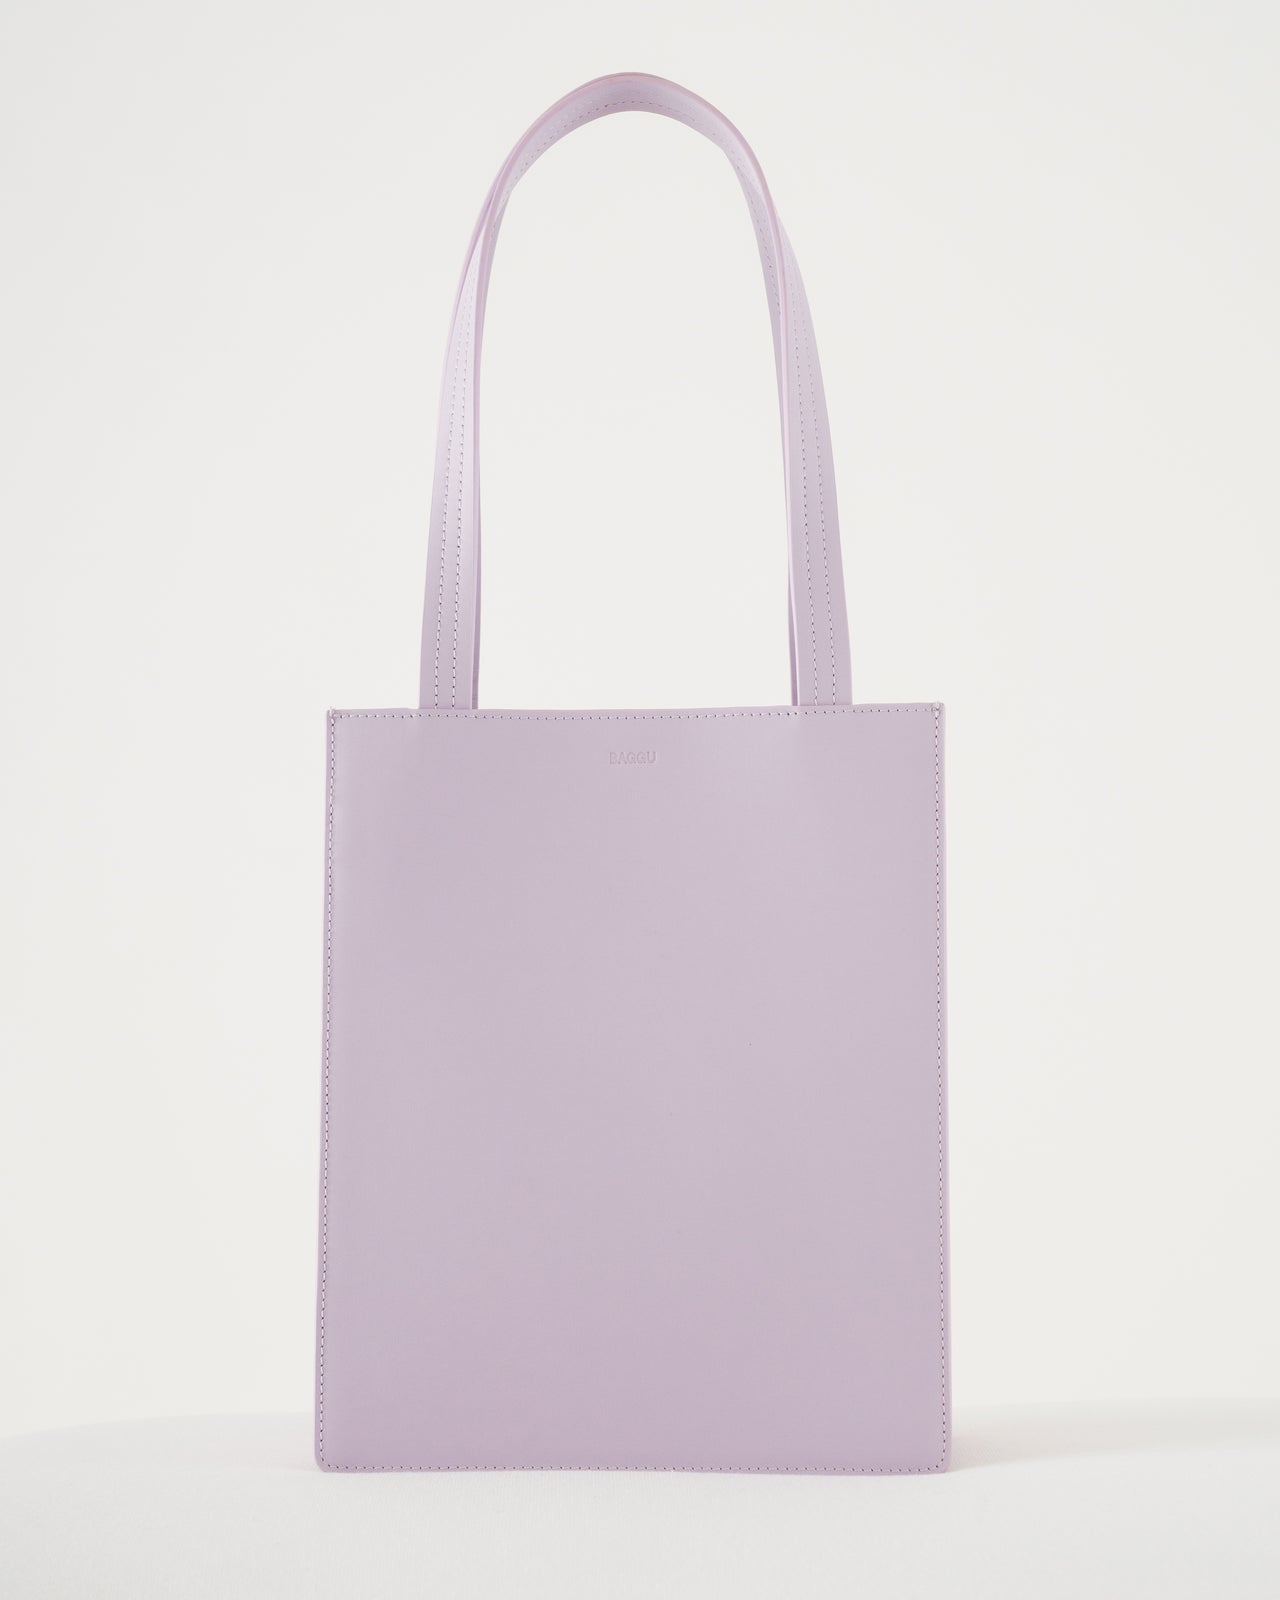 Medium Leather Retail Tote - Pale Orchid